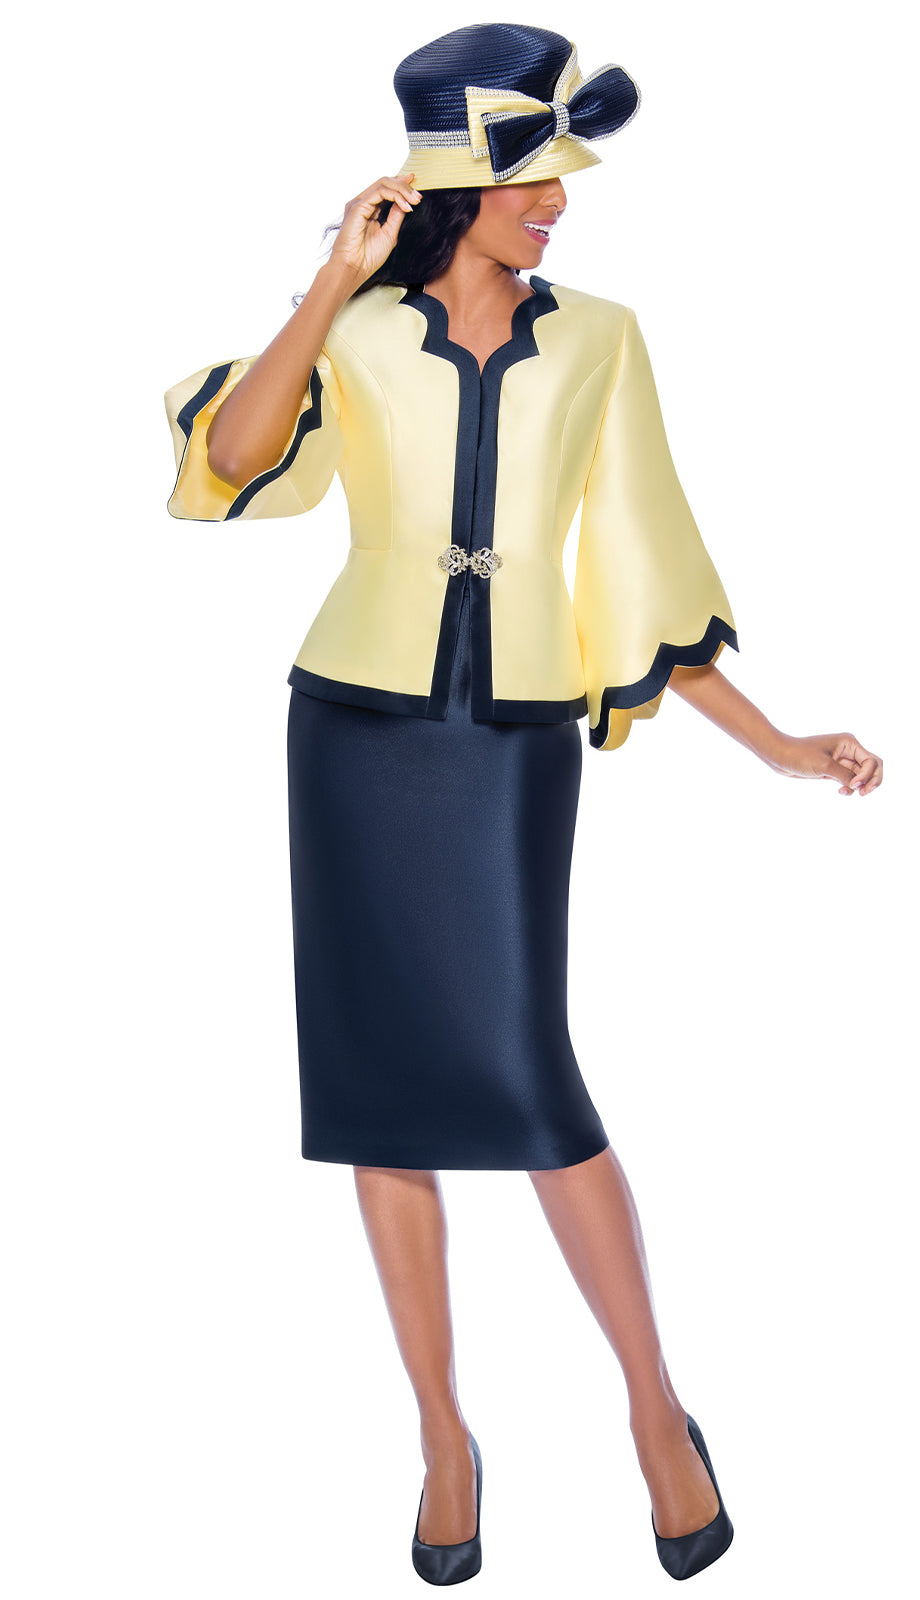 GMI Suit 8062-Yellow/Navy - Church Suits For Less